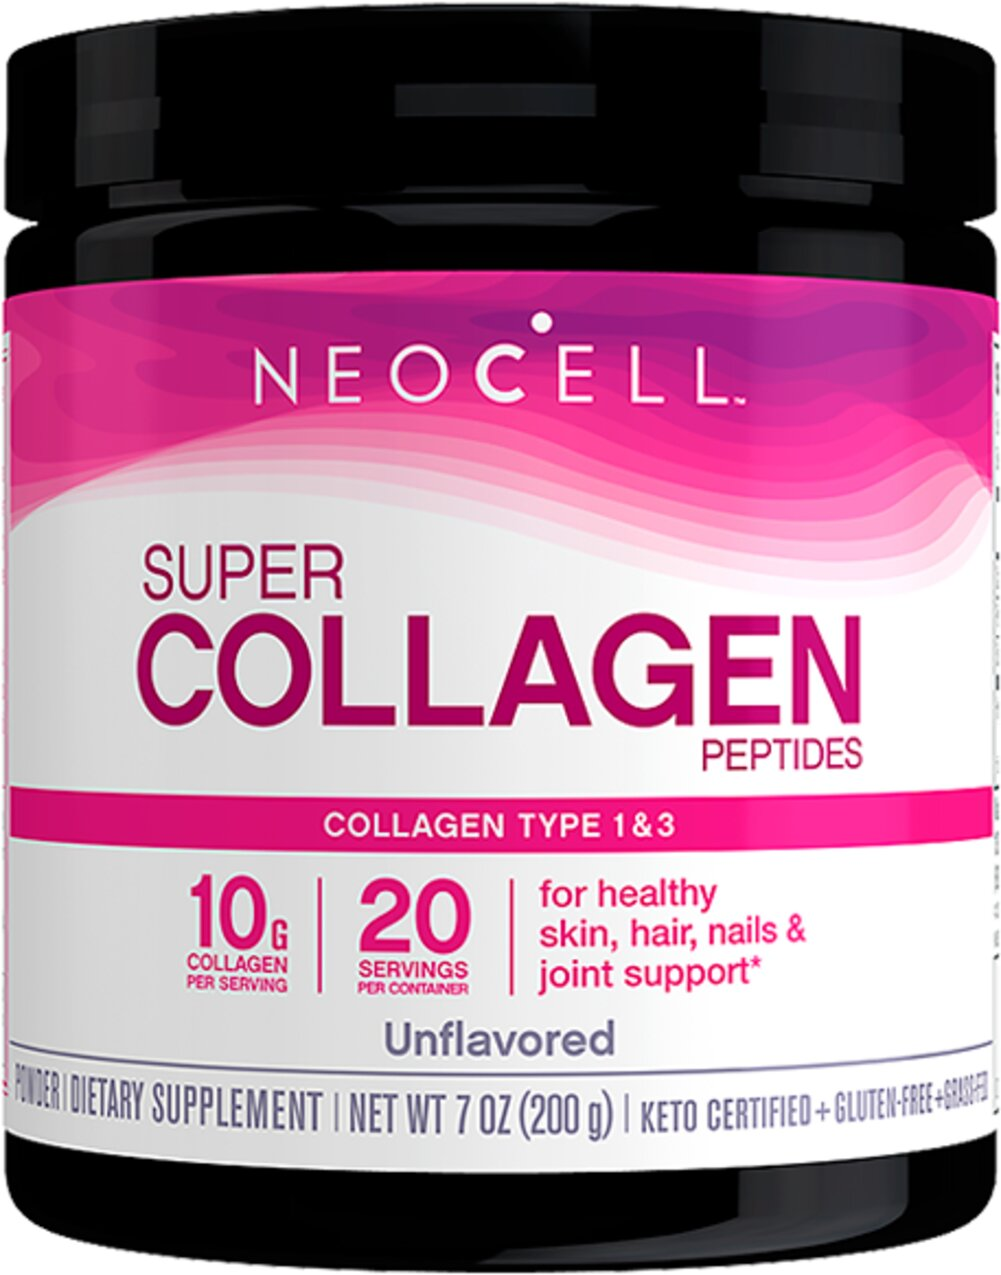 Collagen Type 1 & 3 Powder <p><b>From the Manufacturer's Label: </p></b><p>Pure & Natural</p>  <p>Collagen (collagen hydrolysate) is a complex structural protein that maintains strength and flexibility of skin, ligaments, bones, joints, muscles, tendons, gums, teeth, eyes, blood vessels, nails and hair. Collagen Type I & III is 100% pure collagen protein that provides building materials for growth and maintenance of a healthy body. When C